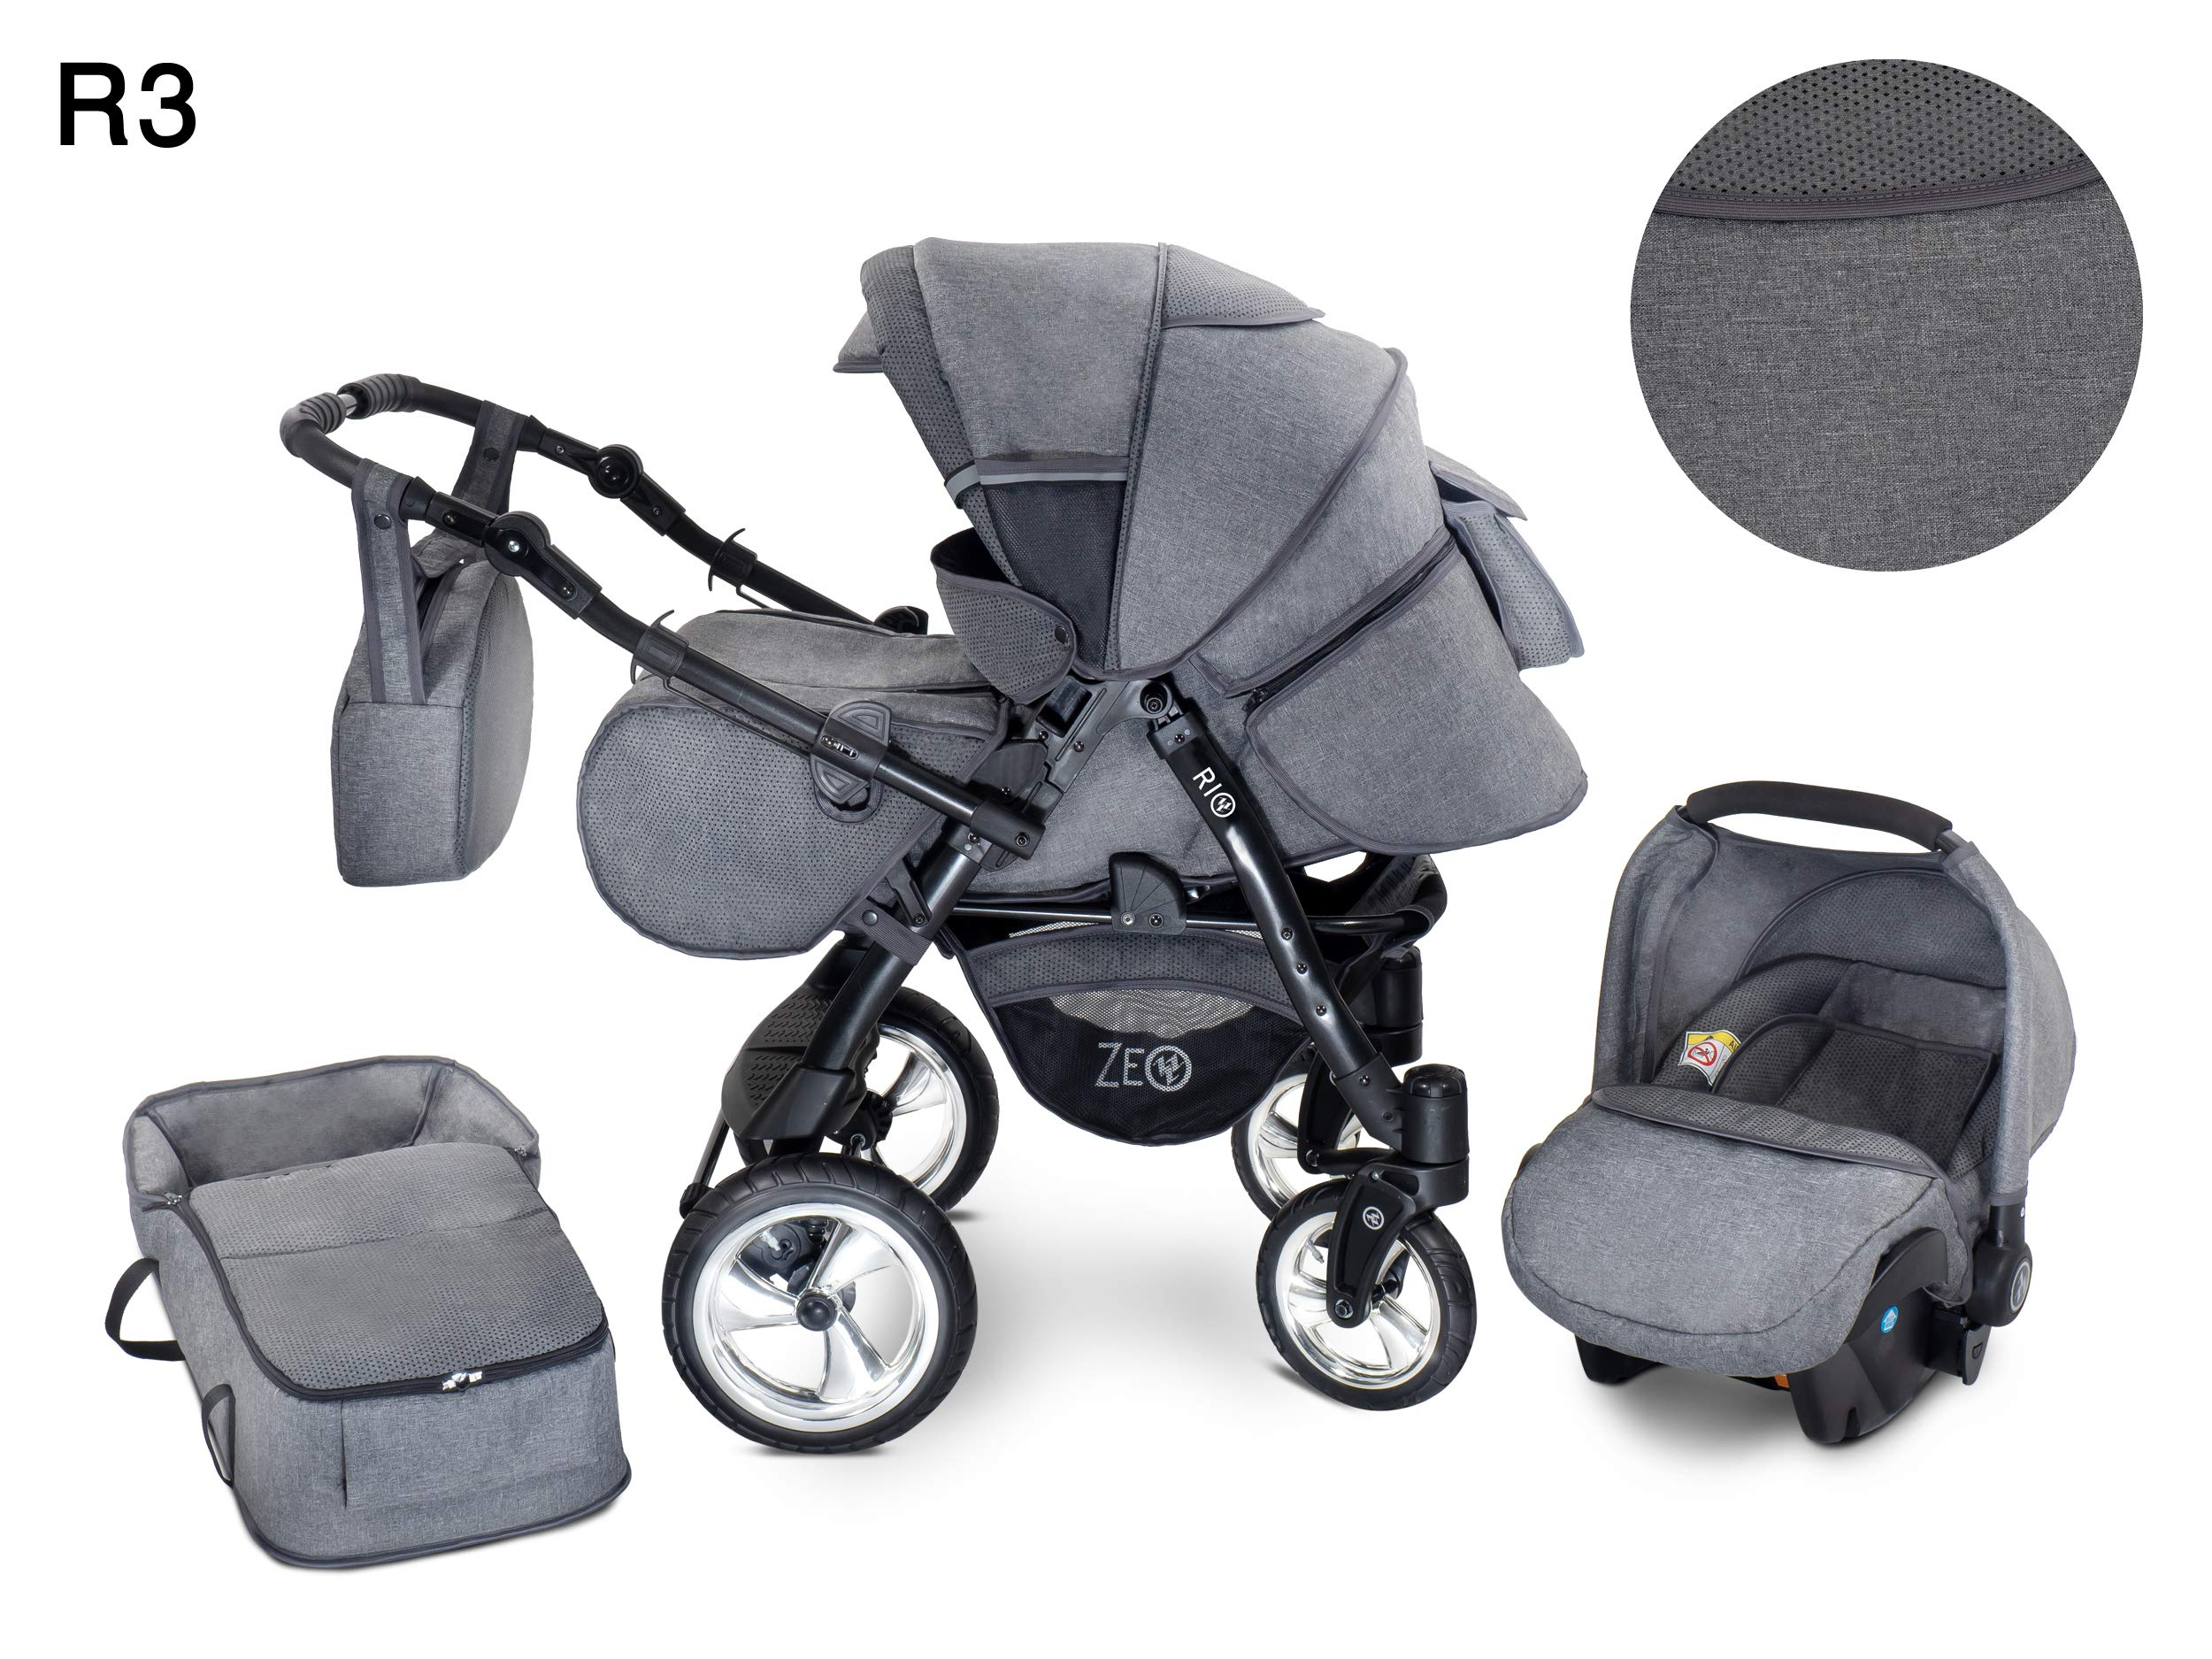 Baby Pram Zeo Rio 3in1 Set - All You Need! carrycot Gondola Buggy Pushchair car seat (R3) Zeo 3 in 1 combination stroller complete set, with reversible handle to the buggy, child car seat or baby carriage Has 360 ° swiveling wheels, two-fold suspension, four-stage backrest, five-position adjustable footrest and a five-point safety belt The stroller can be easily converted into other functions and easy to transport 2